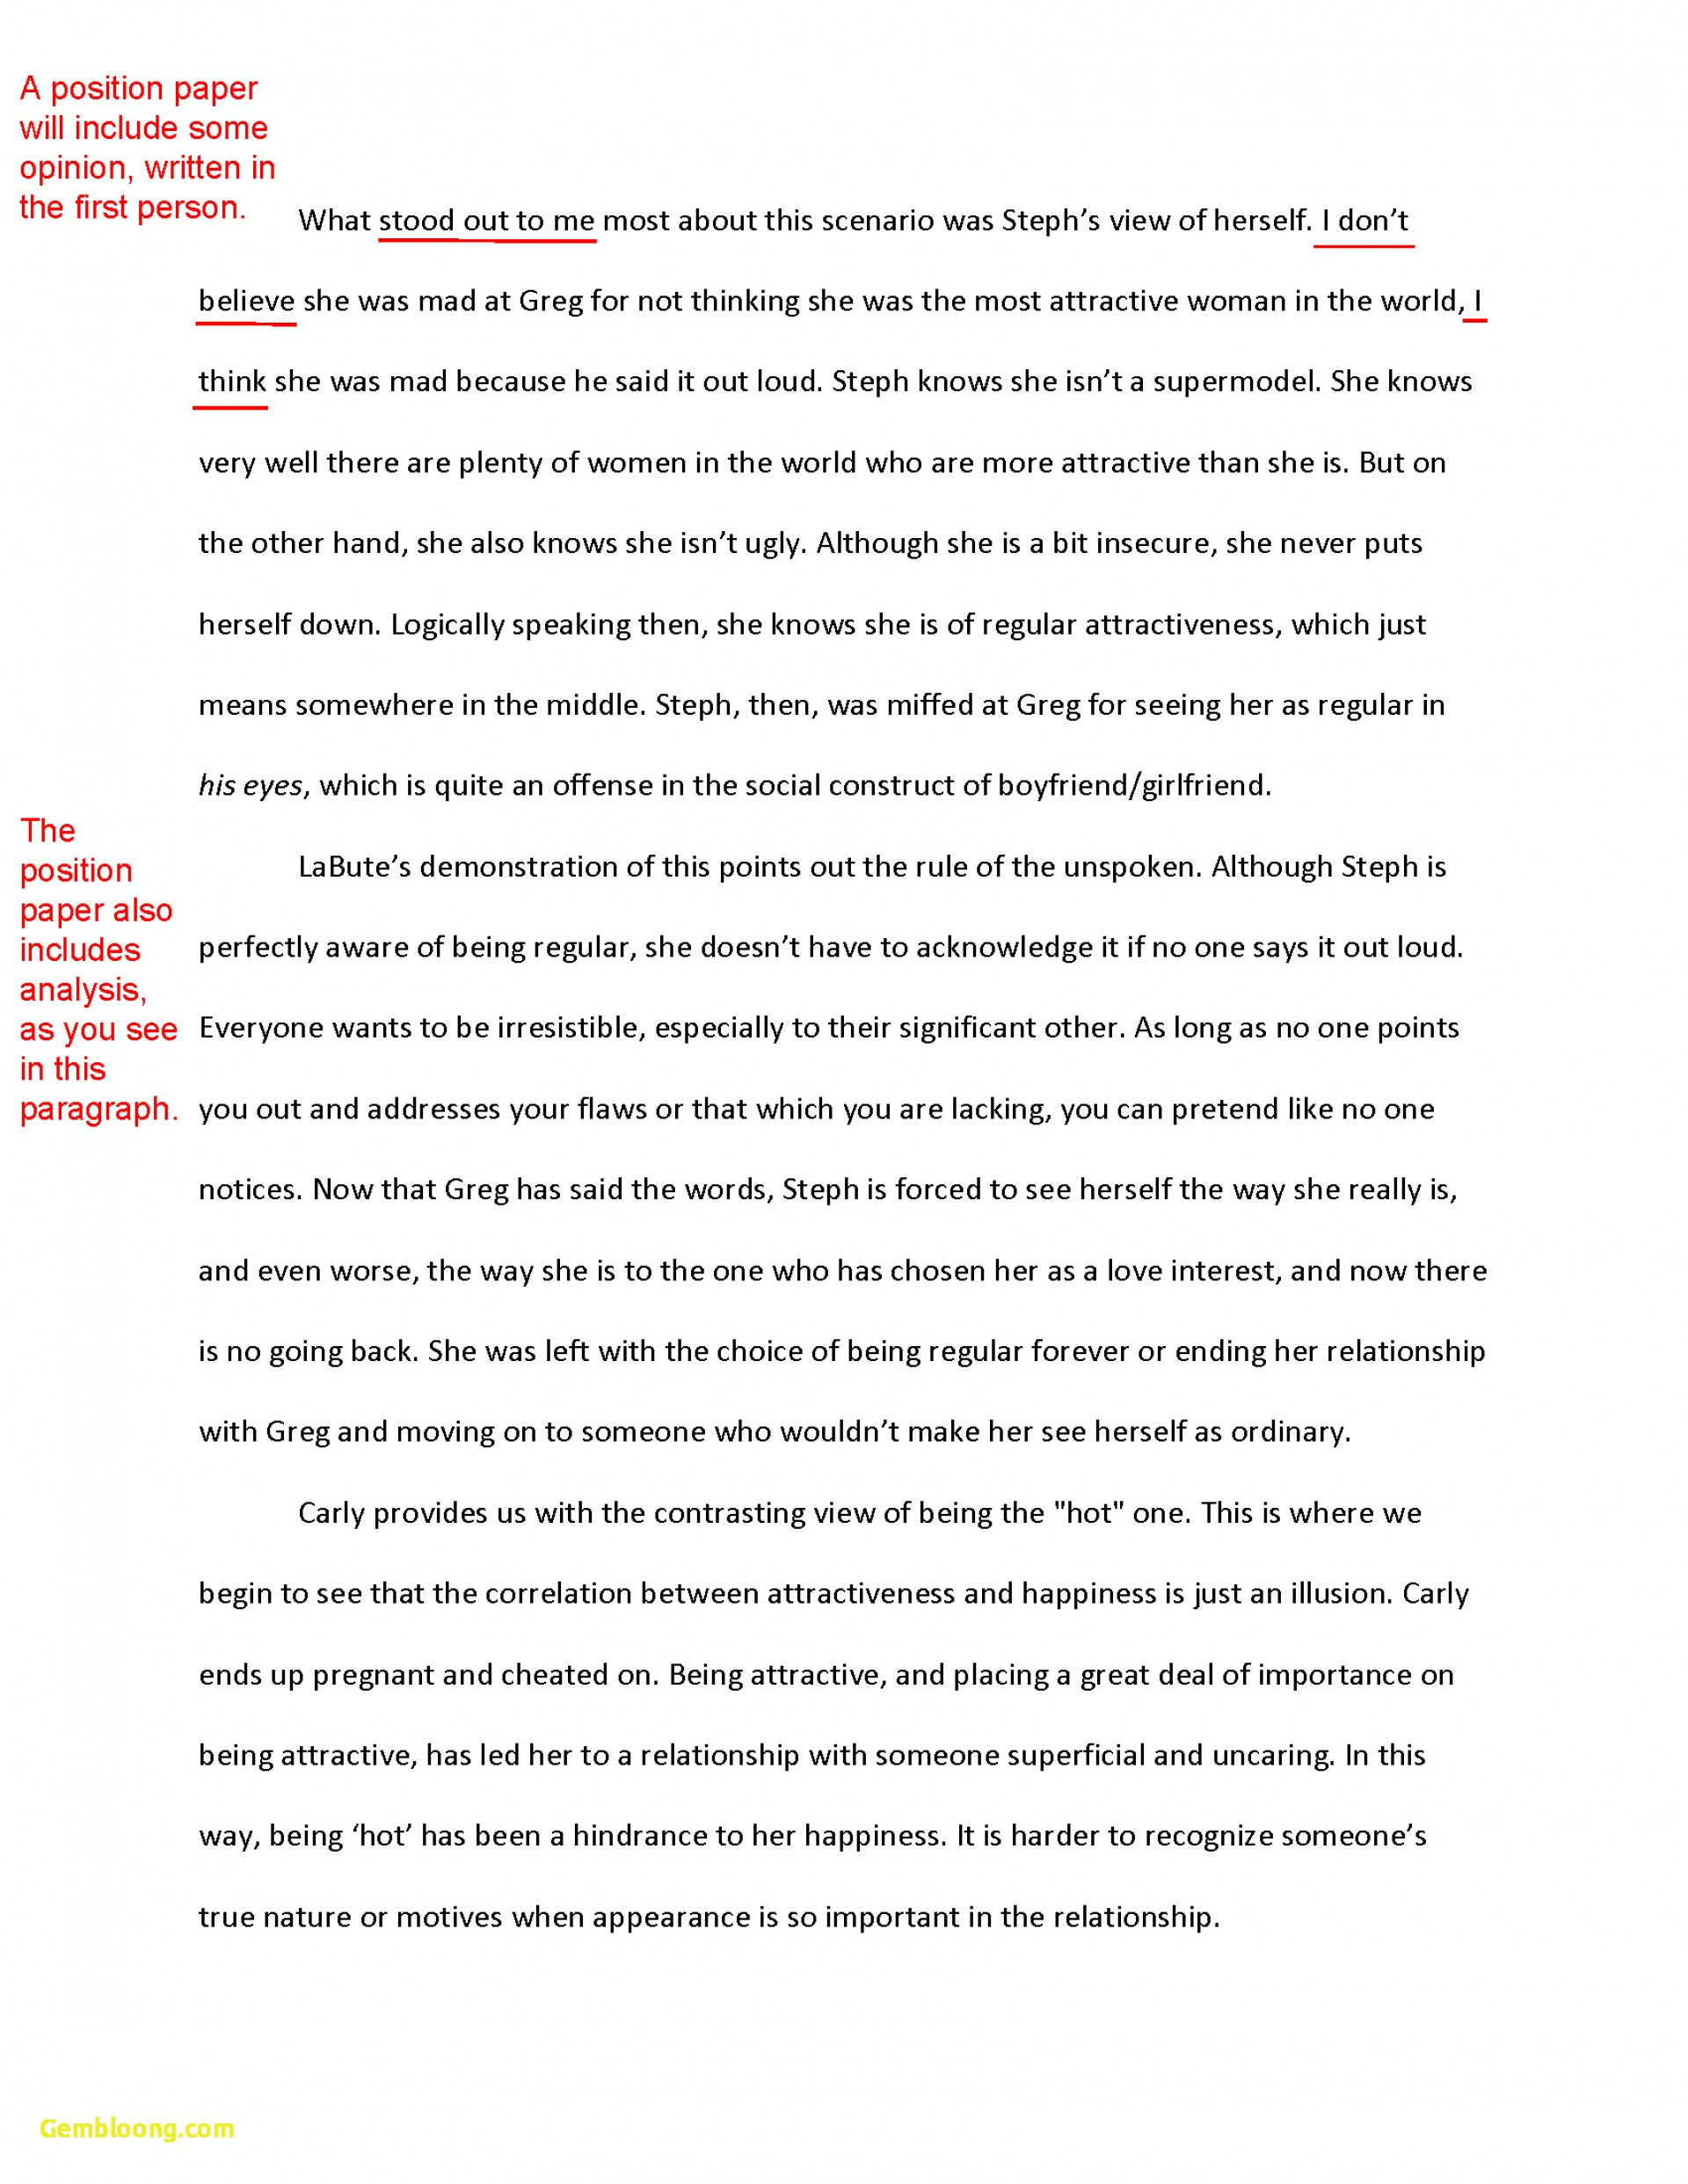 005 Apa Format Essay Example Sample New How To Write Response Paper Stupendous Pdf Title Page Purdue Owl 1920